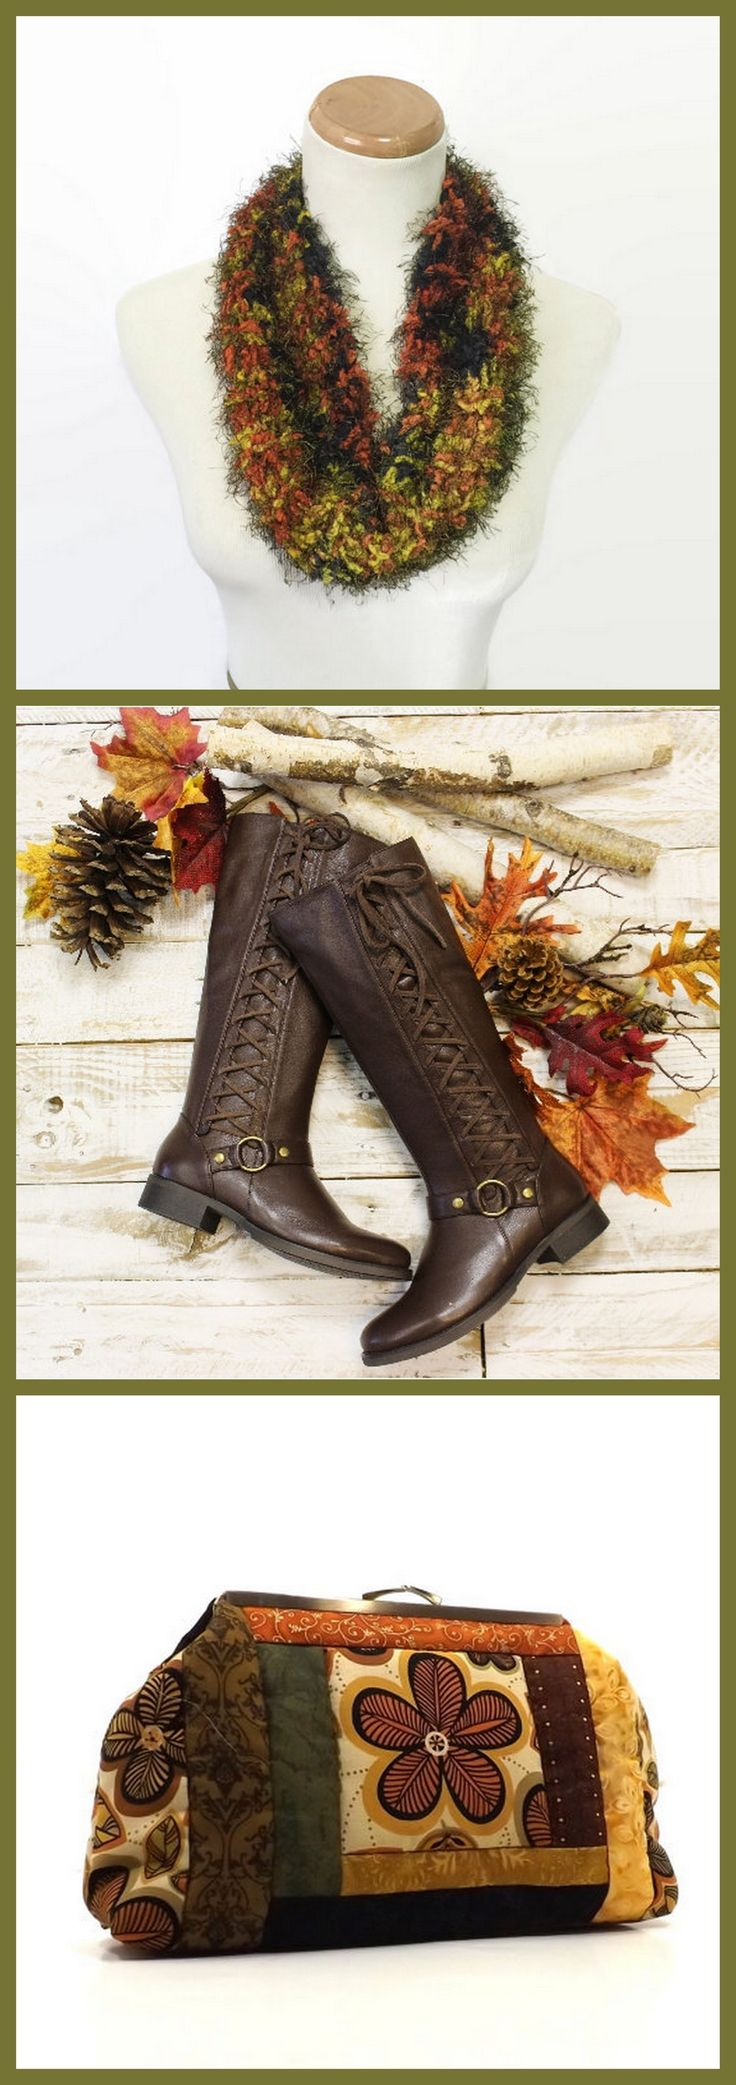 Ode to Fall!  These amazing items can be found here: Gold and Orange Cowl:  https://www.etsy.com/listing/473395825/gold-and-orange-cowl-mini-cowl-hand-knit   Brown Leather Lace Up Boots: https://www.etsy.com/listing/238774977/brown-real-leather-side-lace-up-boot  Boho Quilted Handbag:  https://www.etsy.com/listing/225379237/boho-handbag-quilted-tribal-spice-autumn